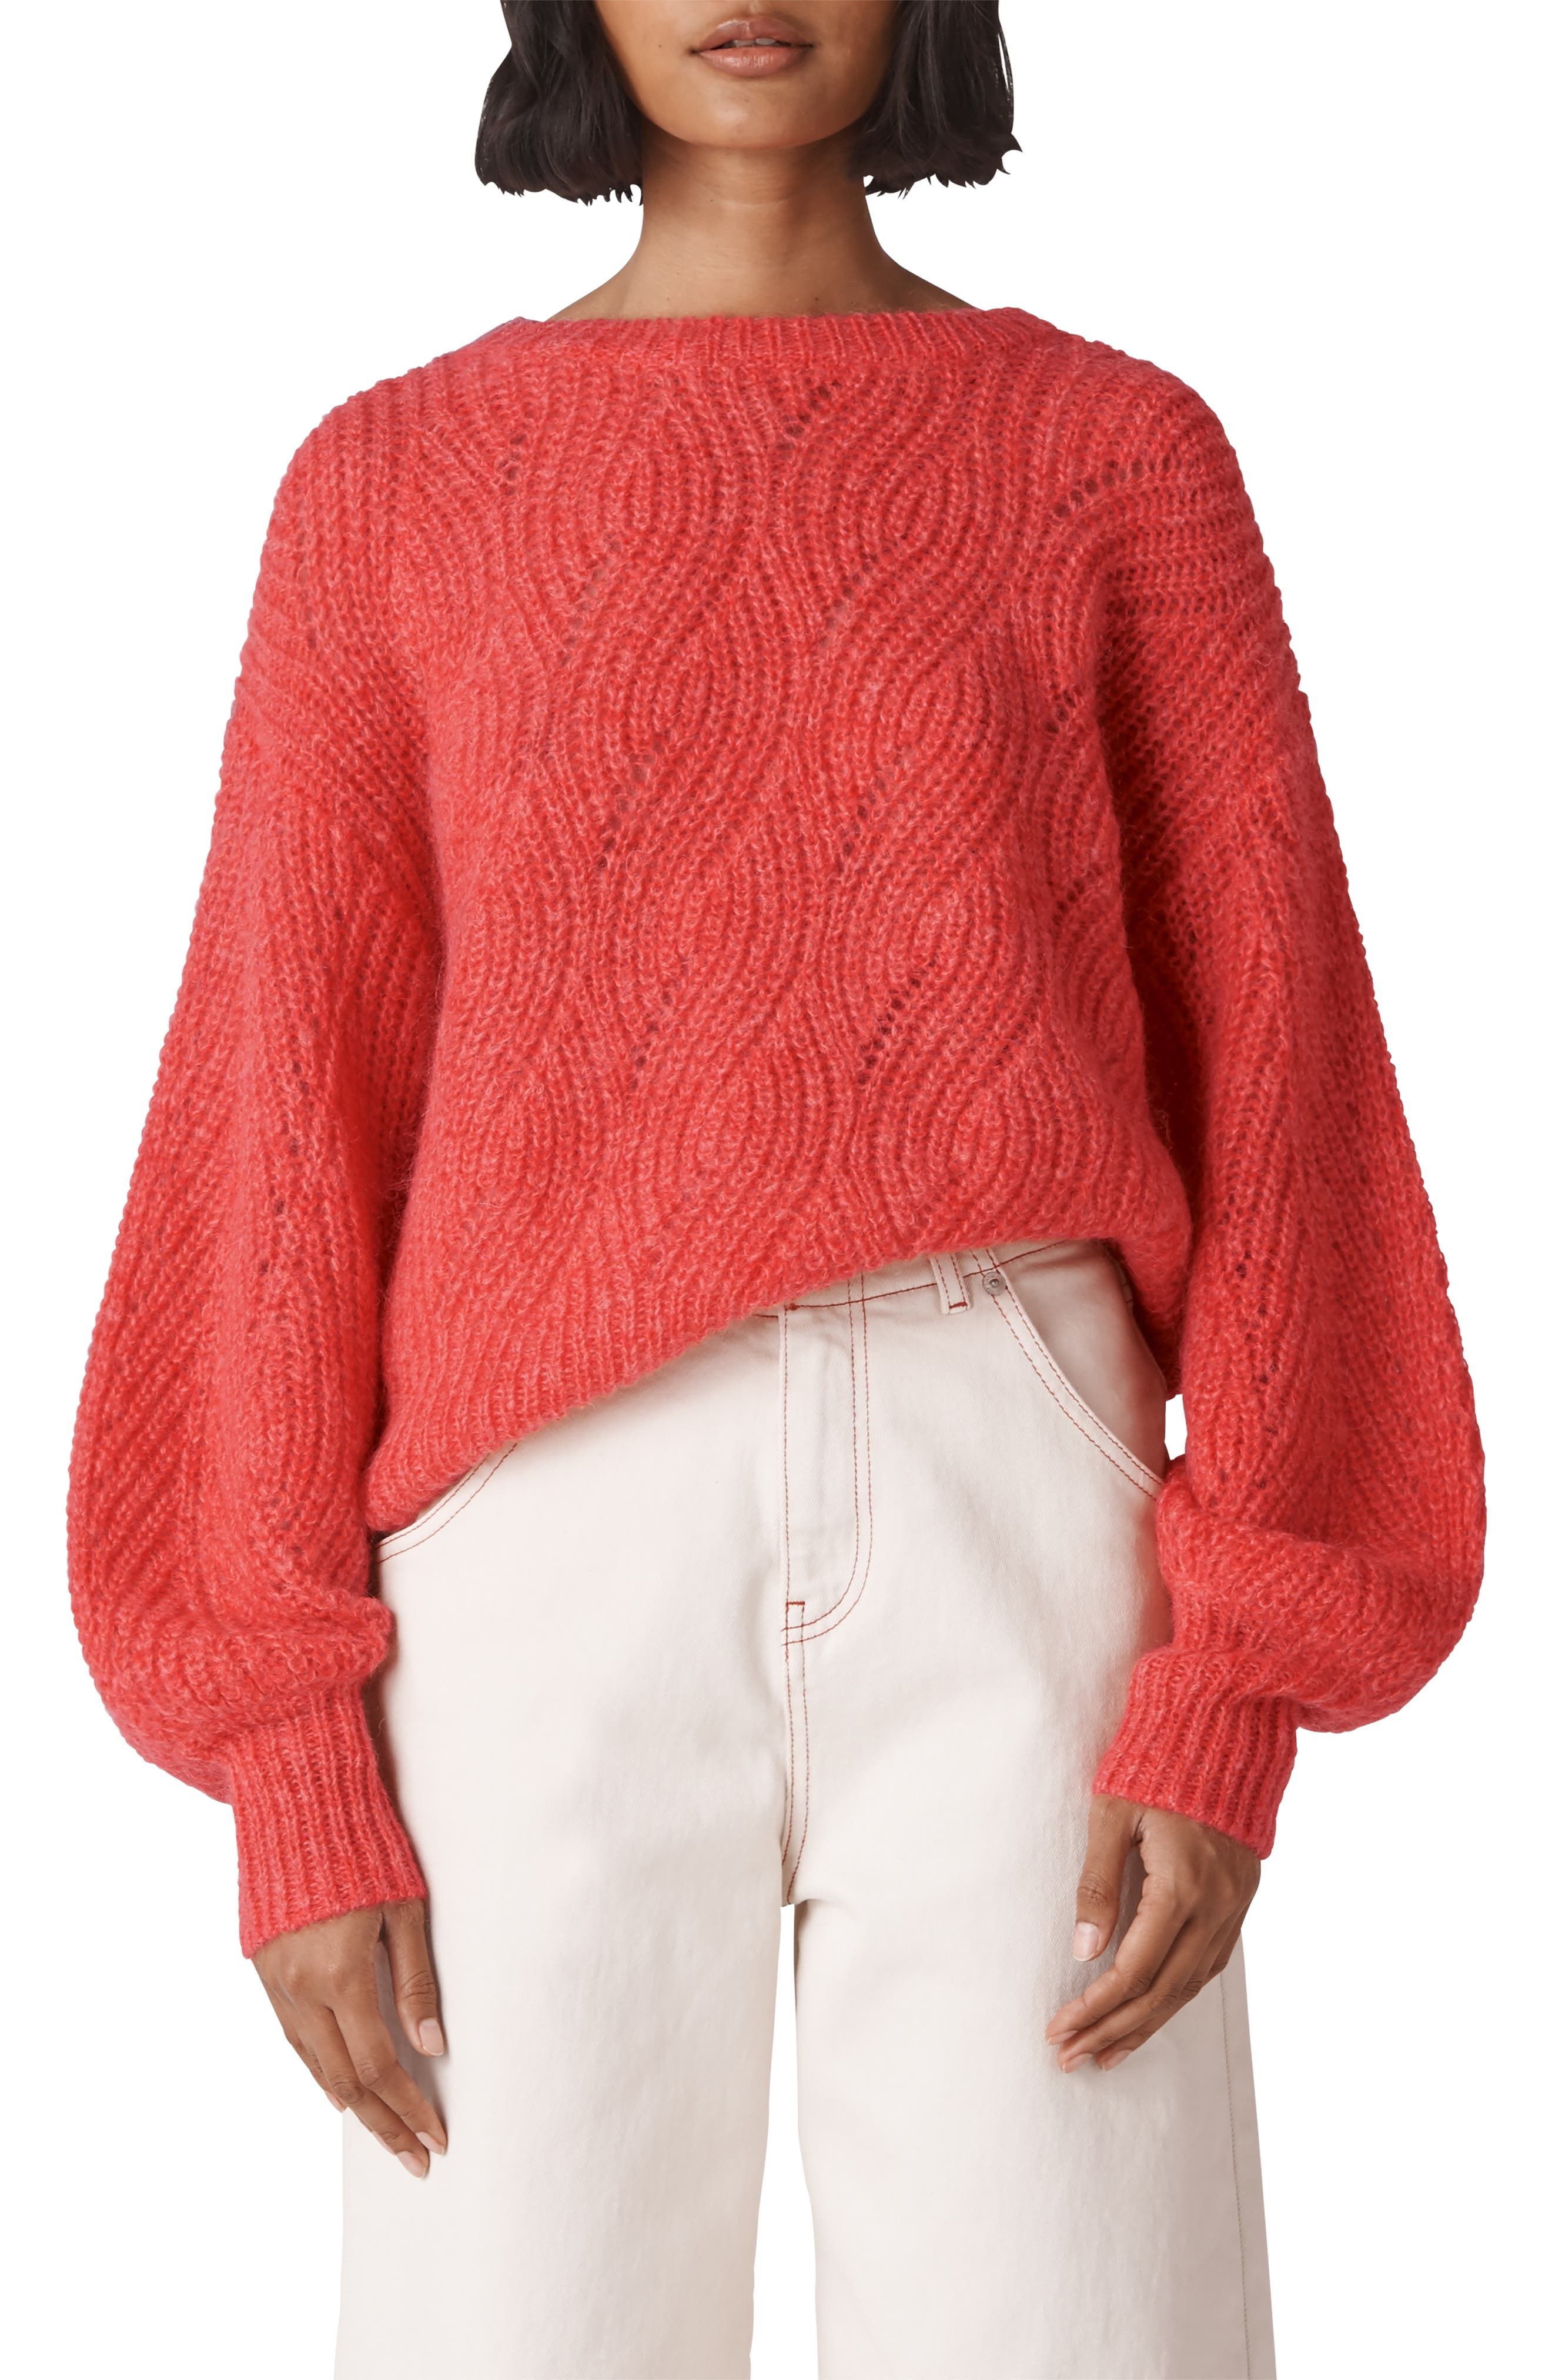 Sophia Wool Blend Sweater,                             Main thumbnail 1, color,                             RED